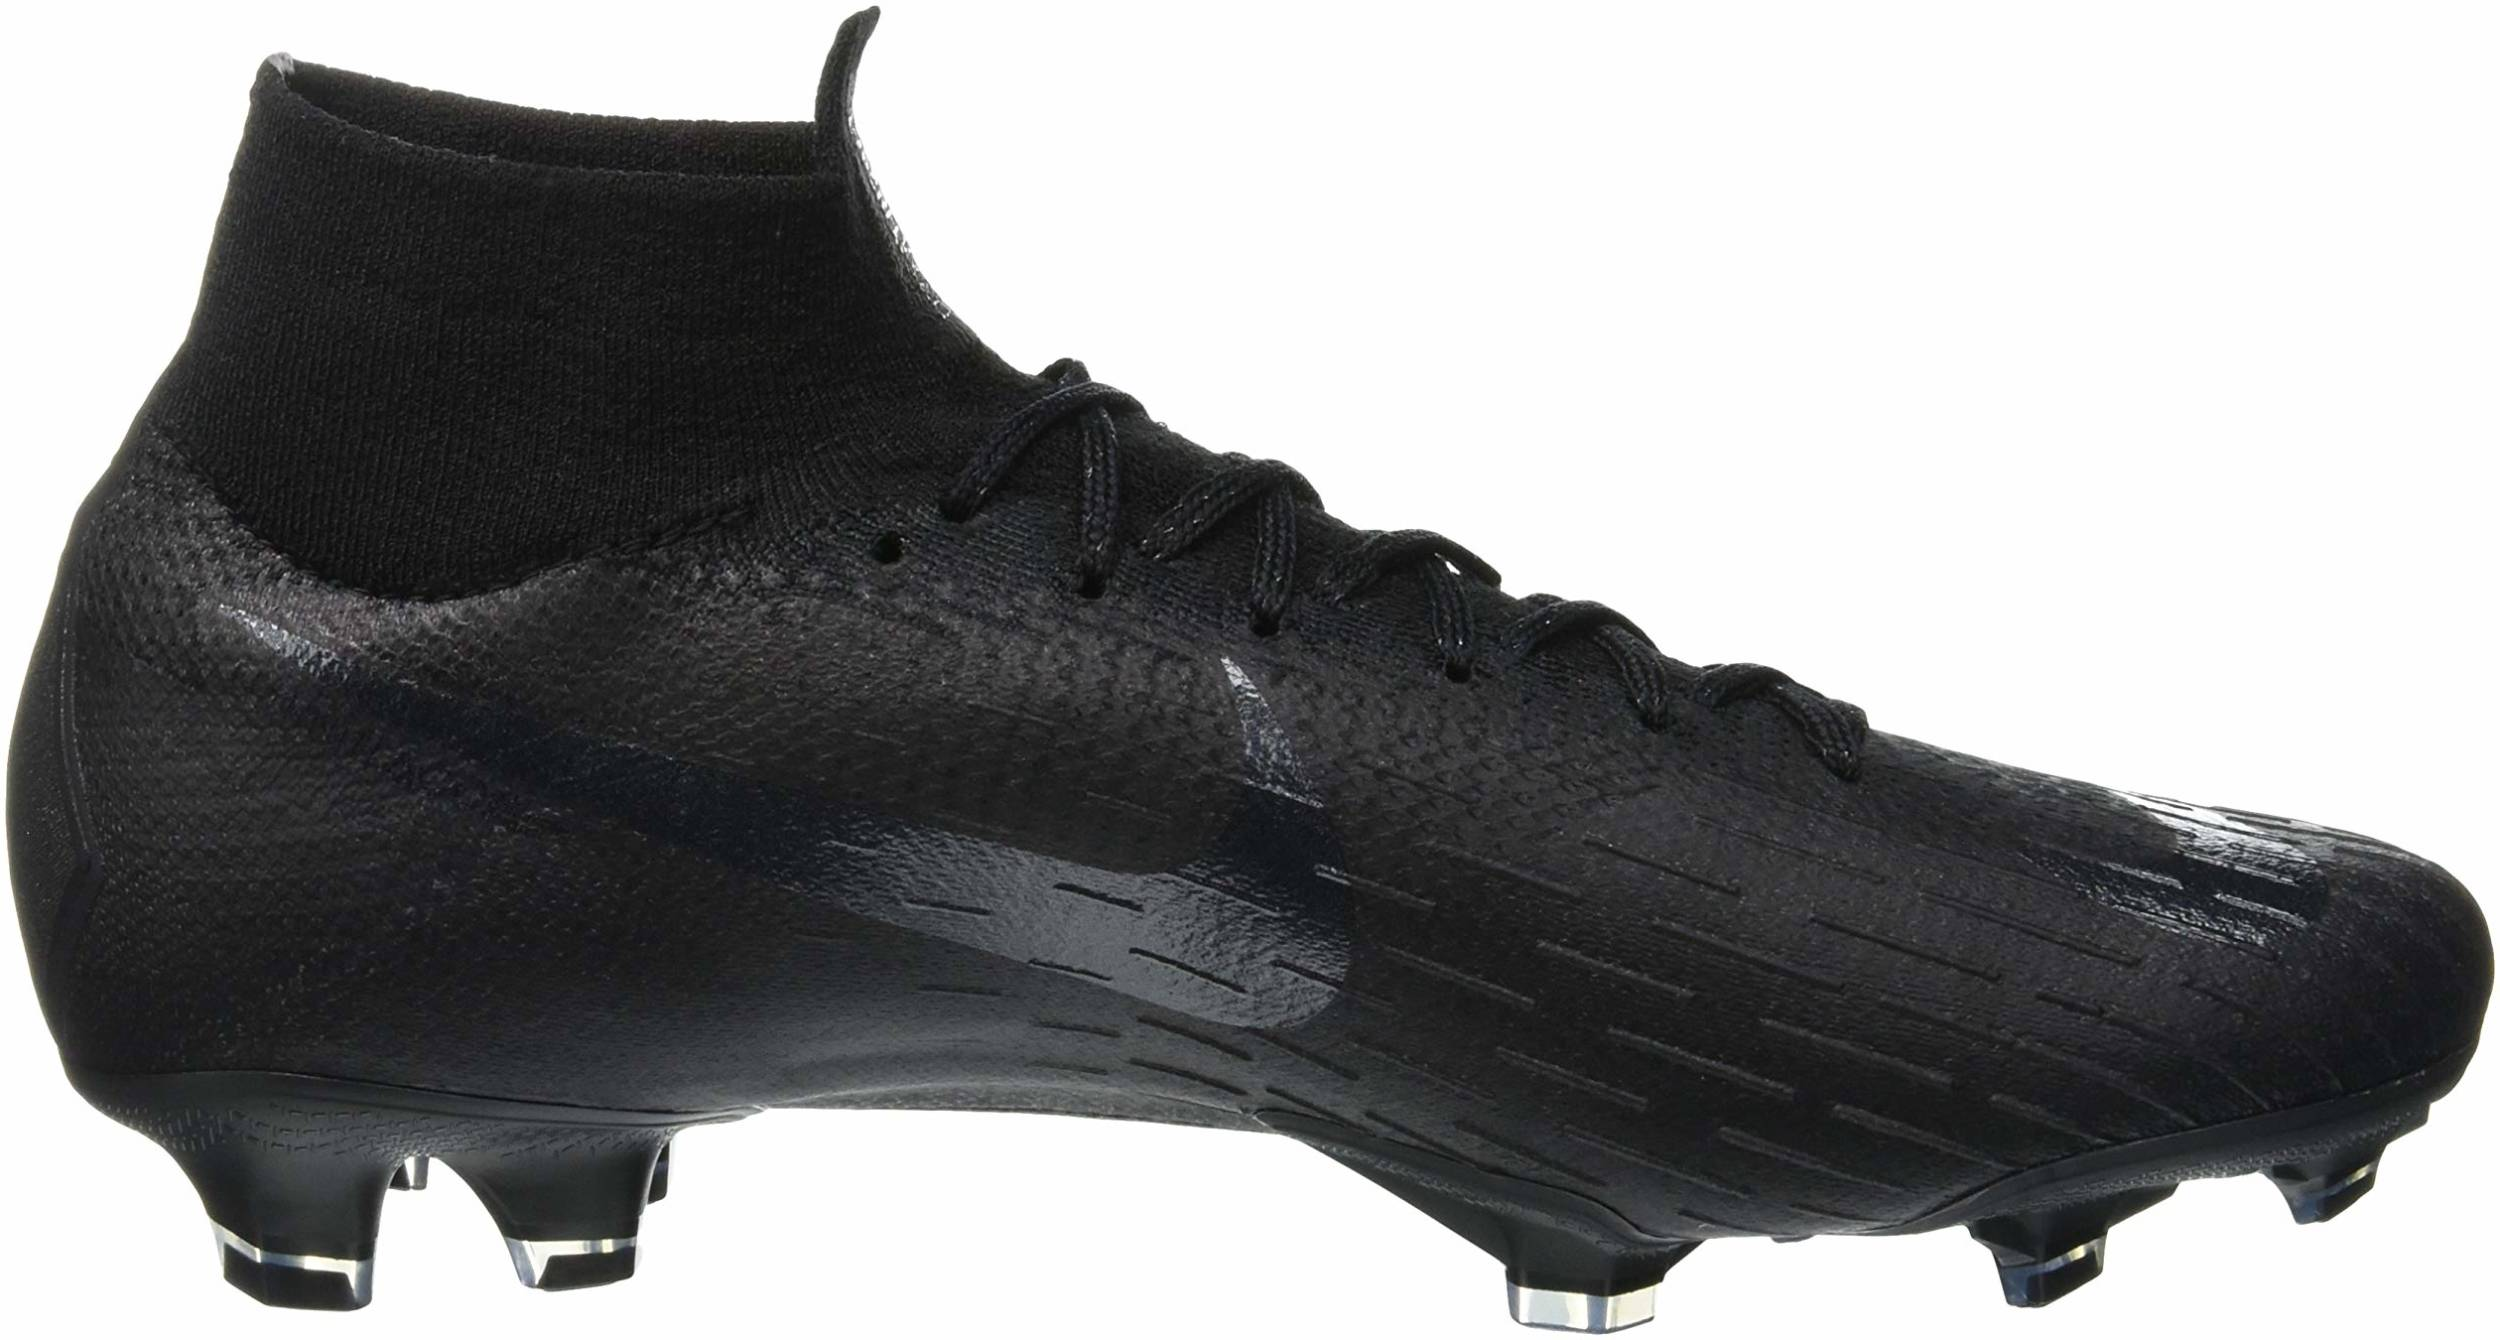 Save 56% on Nike Soccer Cleats (146